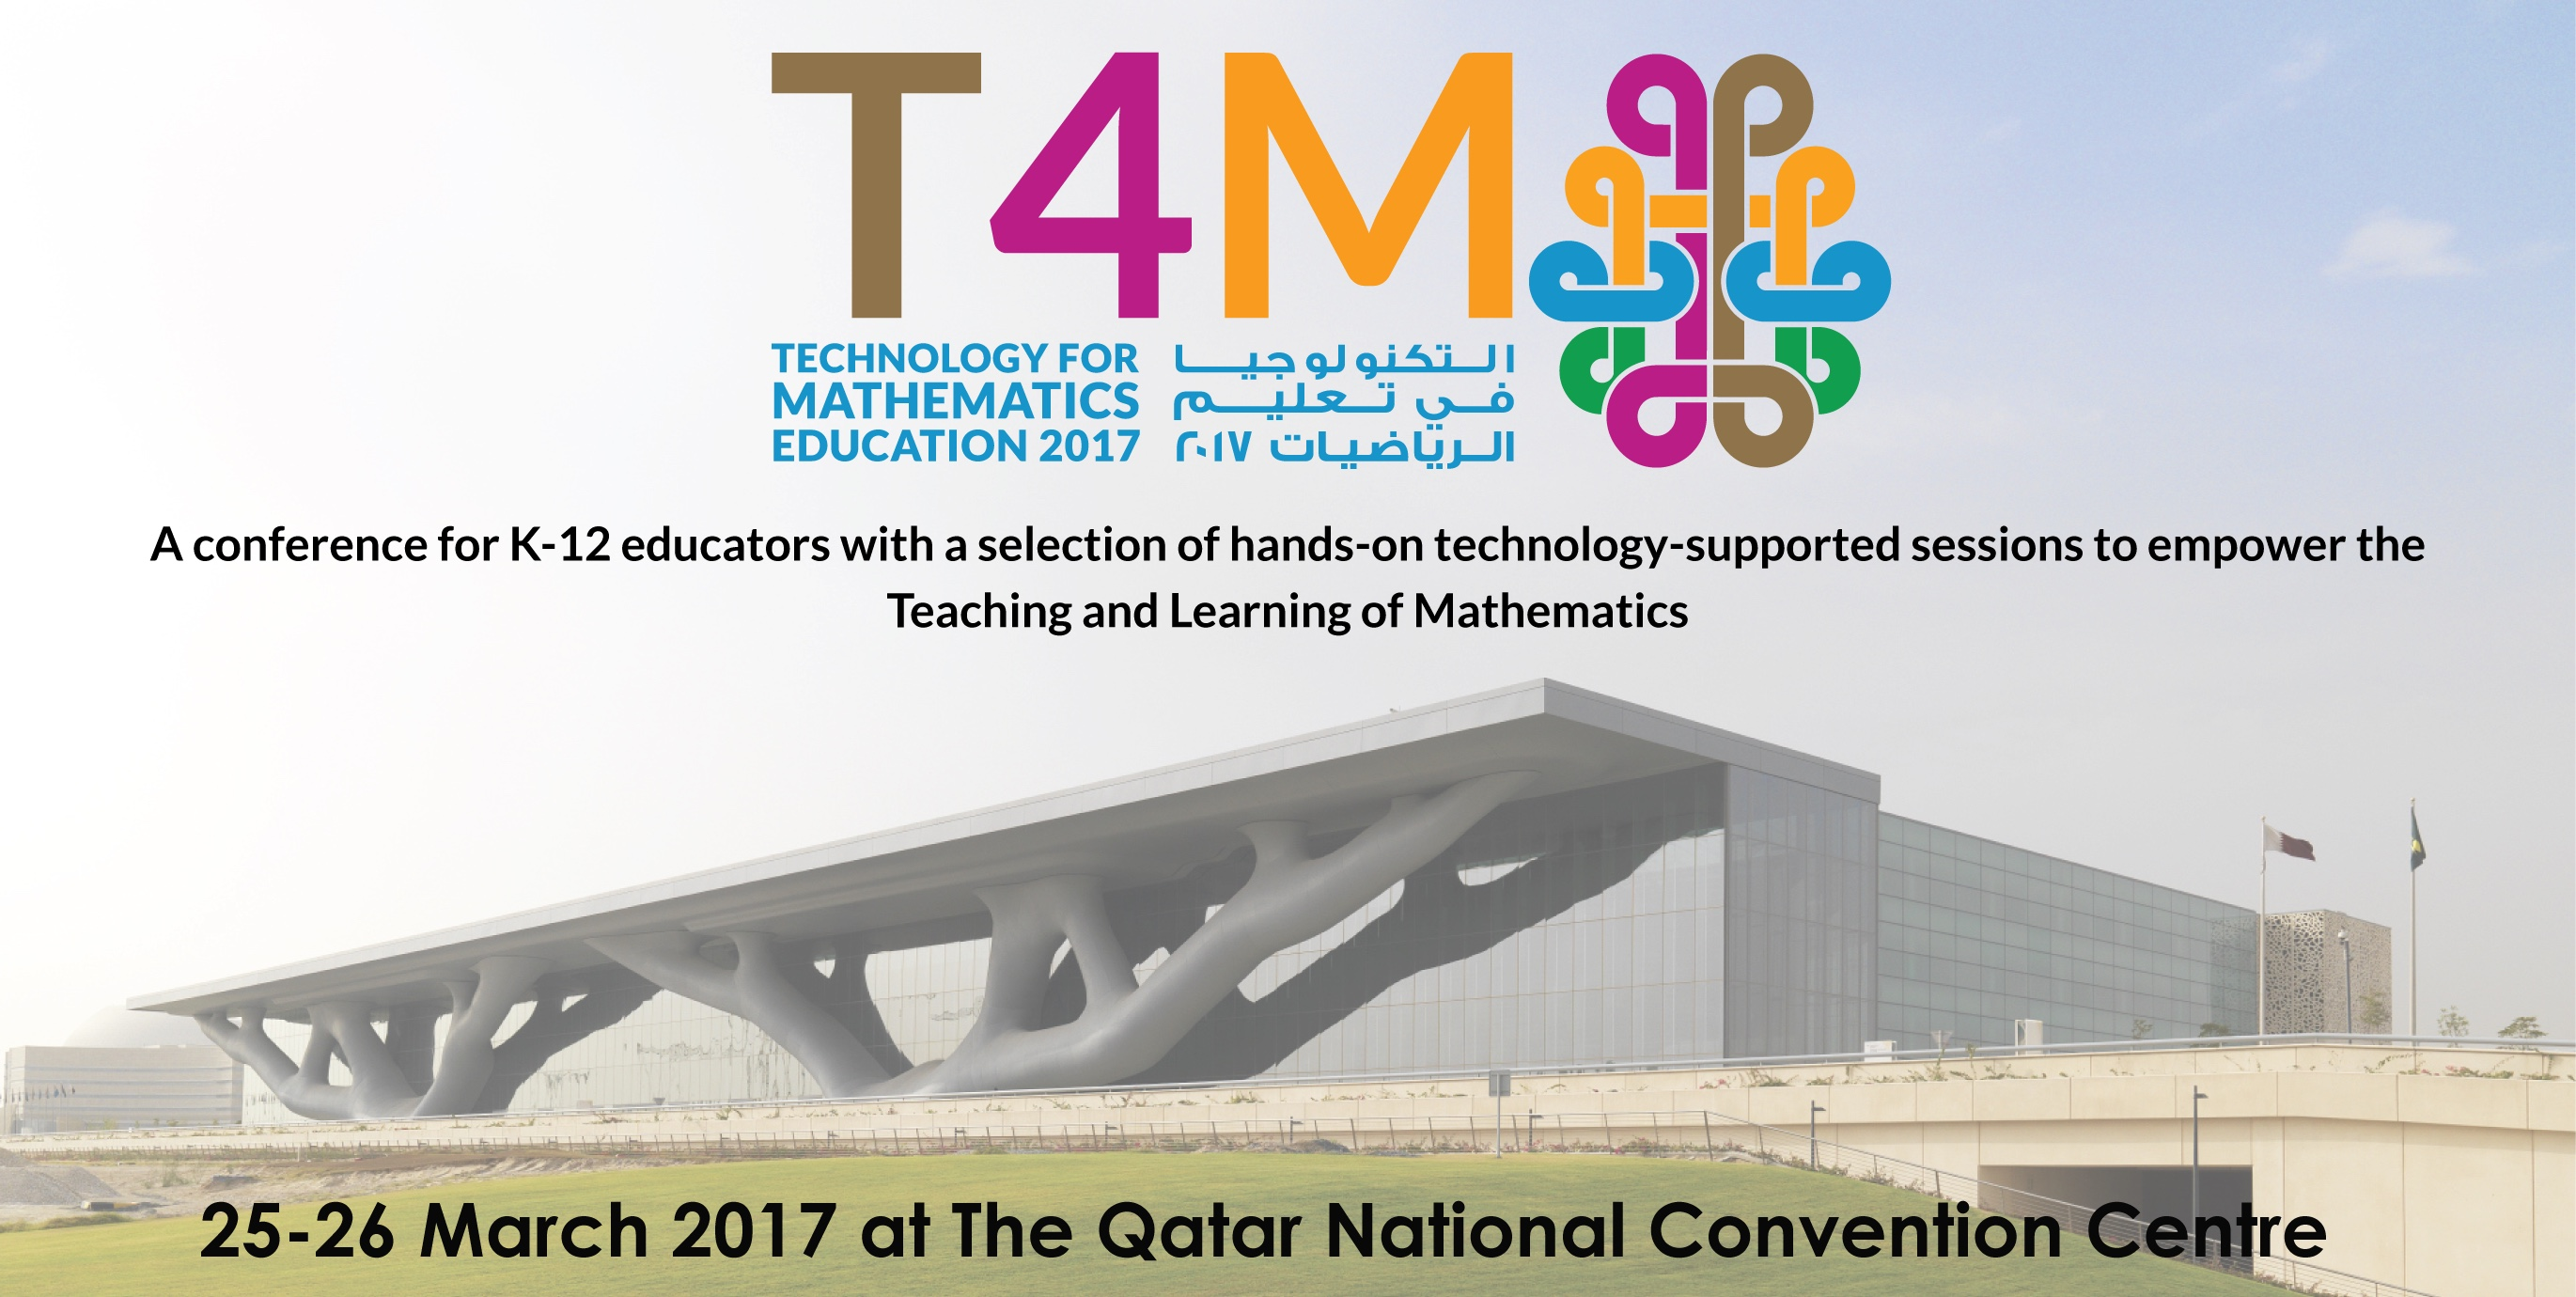 Technology For Mathematics Education Conference March 2017